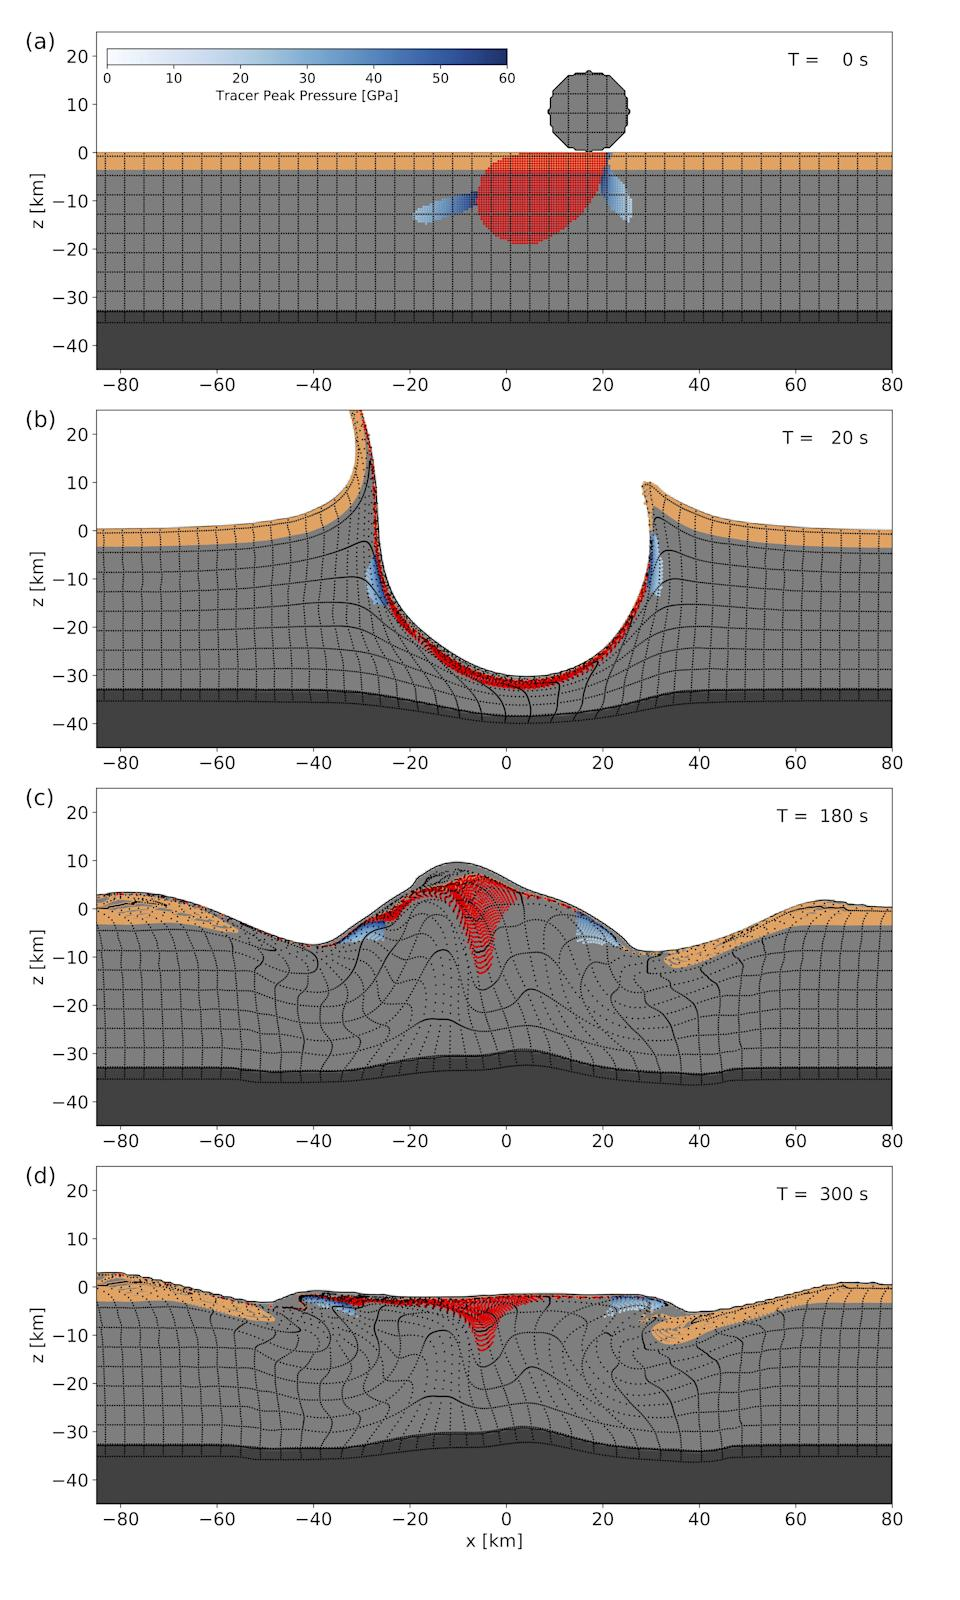 Development of the Chicxulub at 60°impact. Shown are cross-sections through the numerical simulation along the plane of trajectory (SWNS)